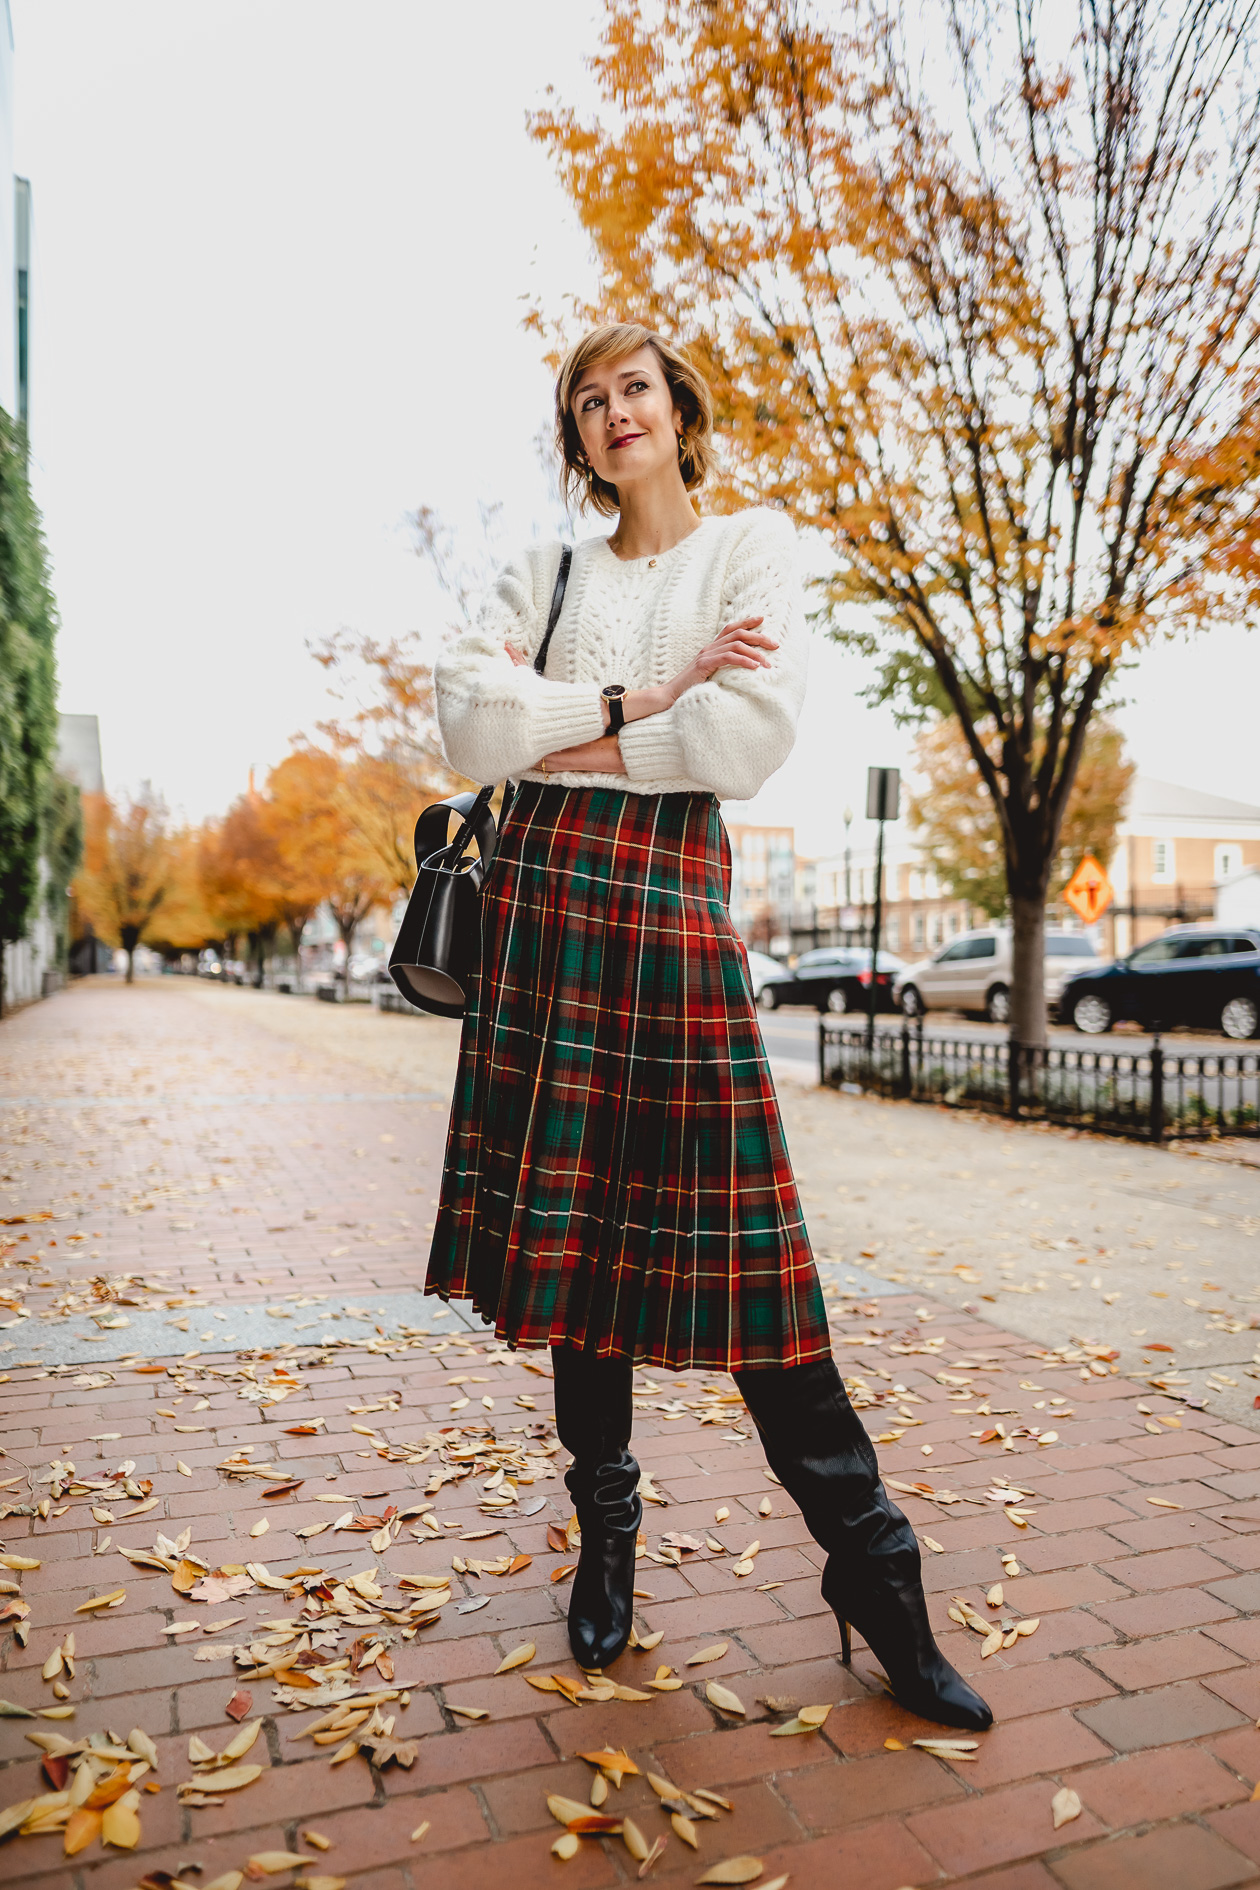 & Other Stories sweater and tartan skirt